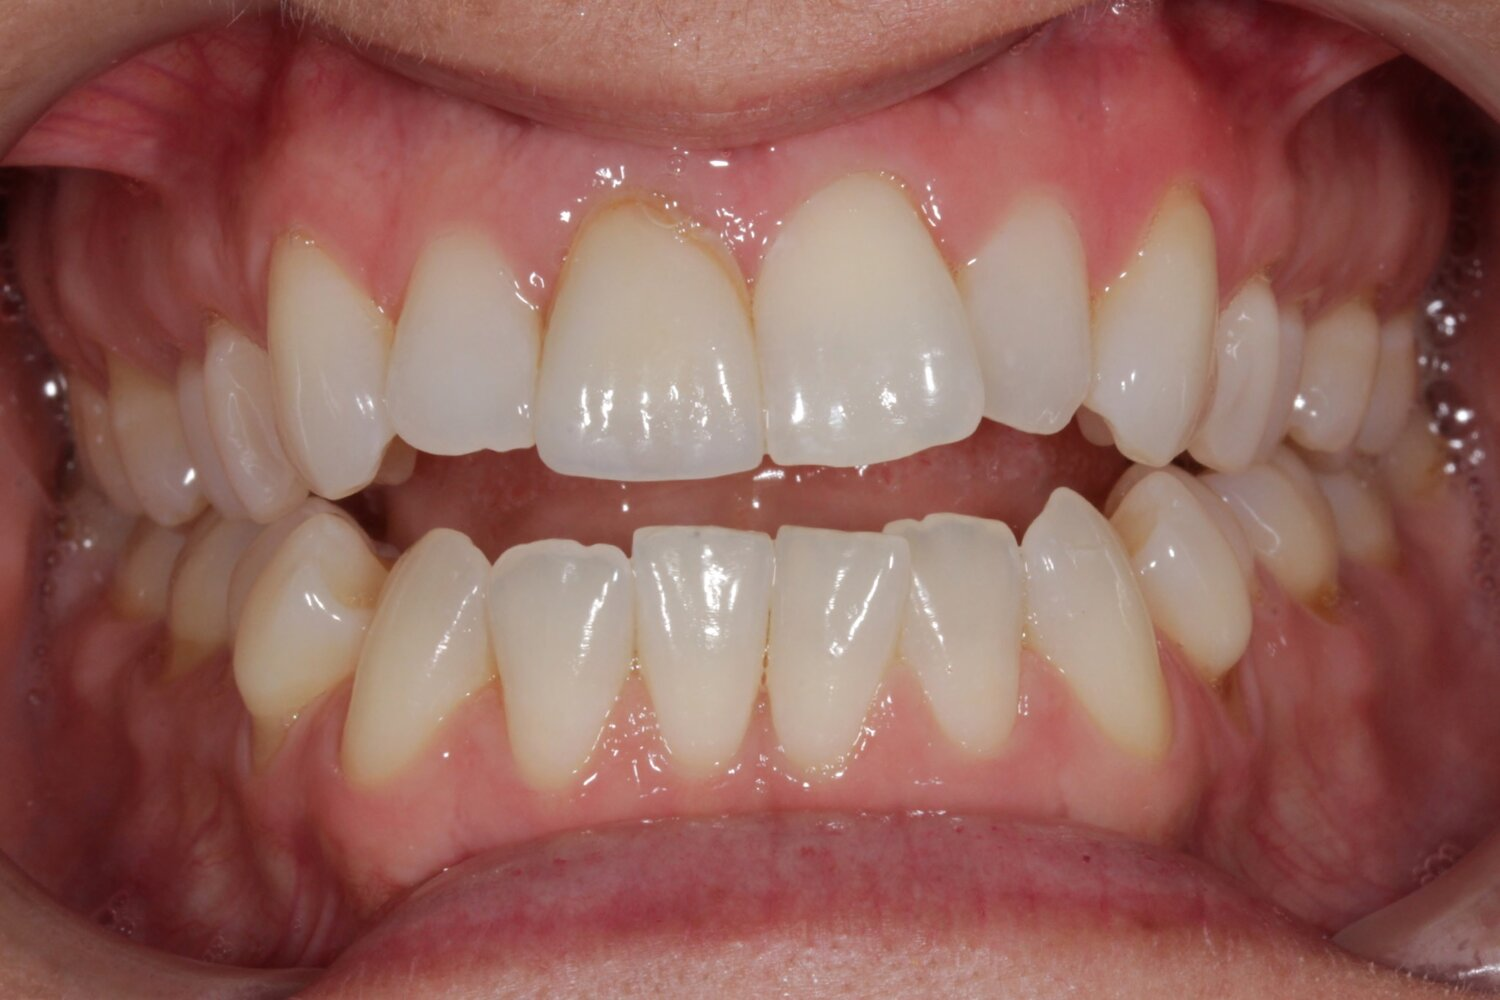 Frontal Intraoral Photo 1.jpg